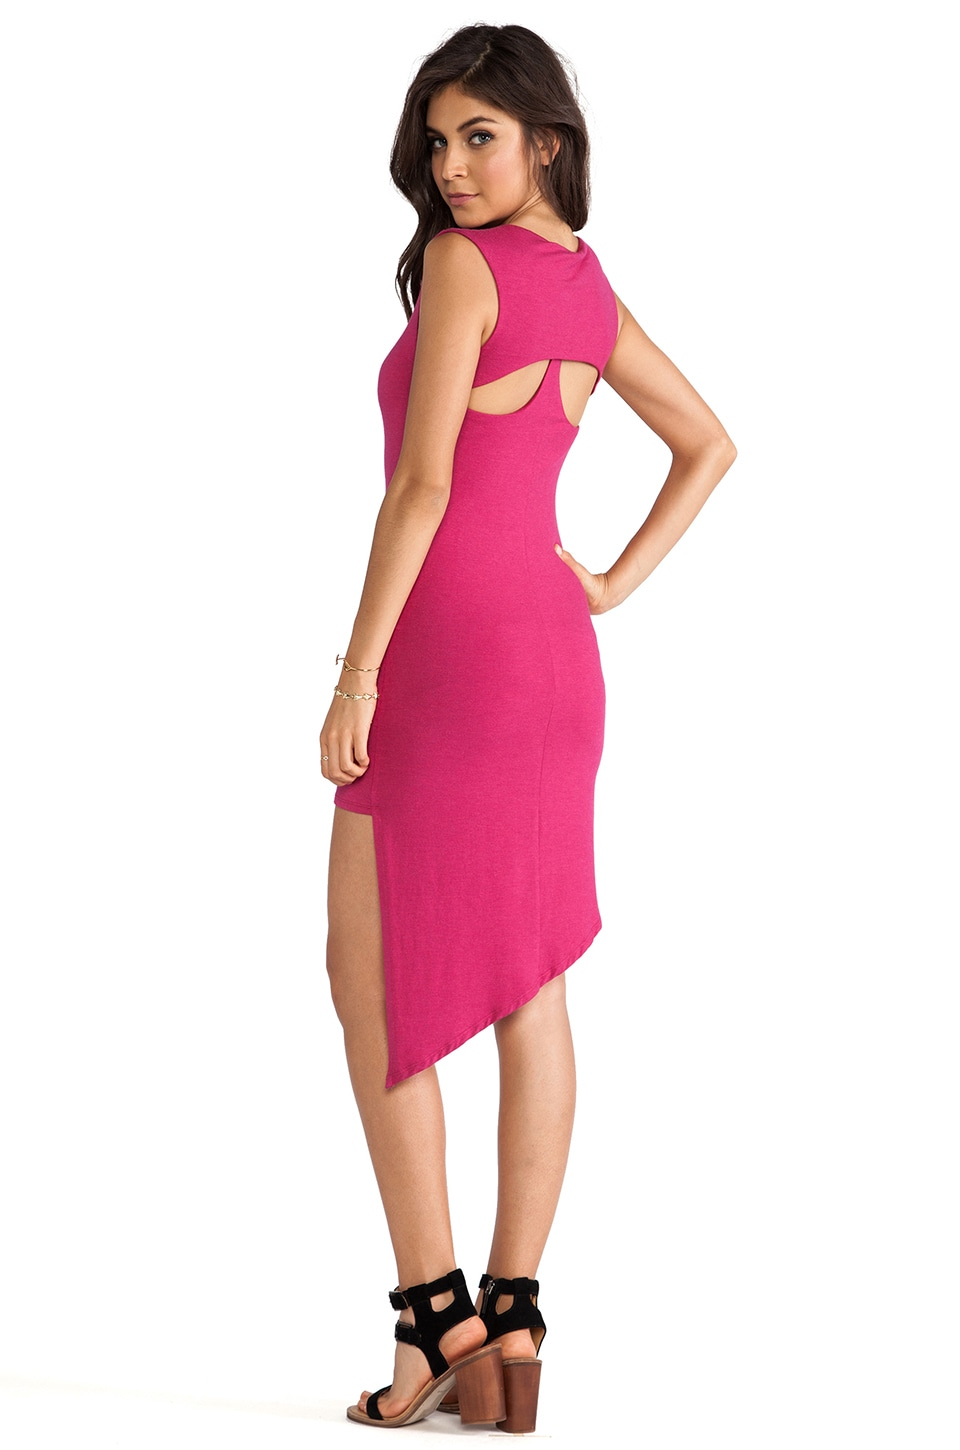 Heather Cutout Back Angle Dress in Heather Azalea